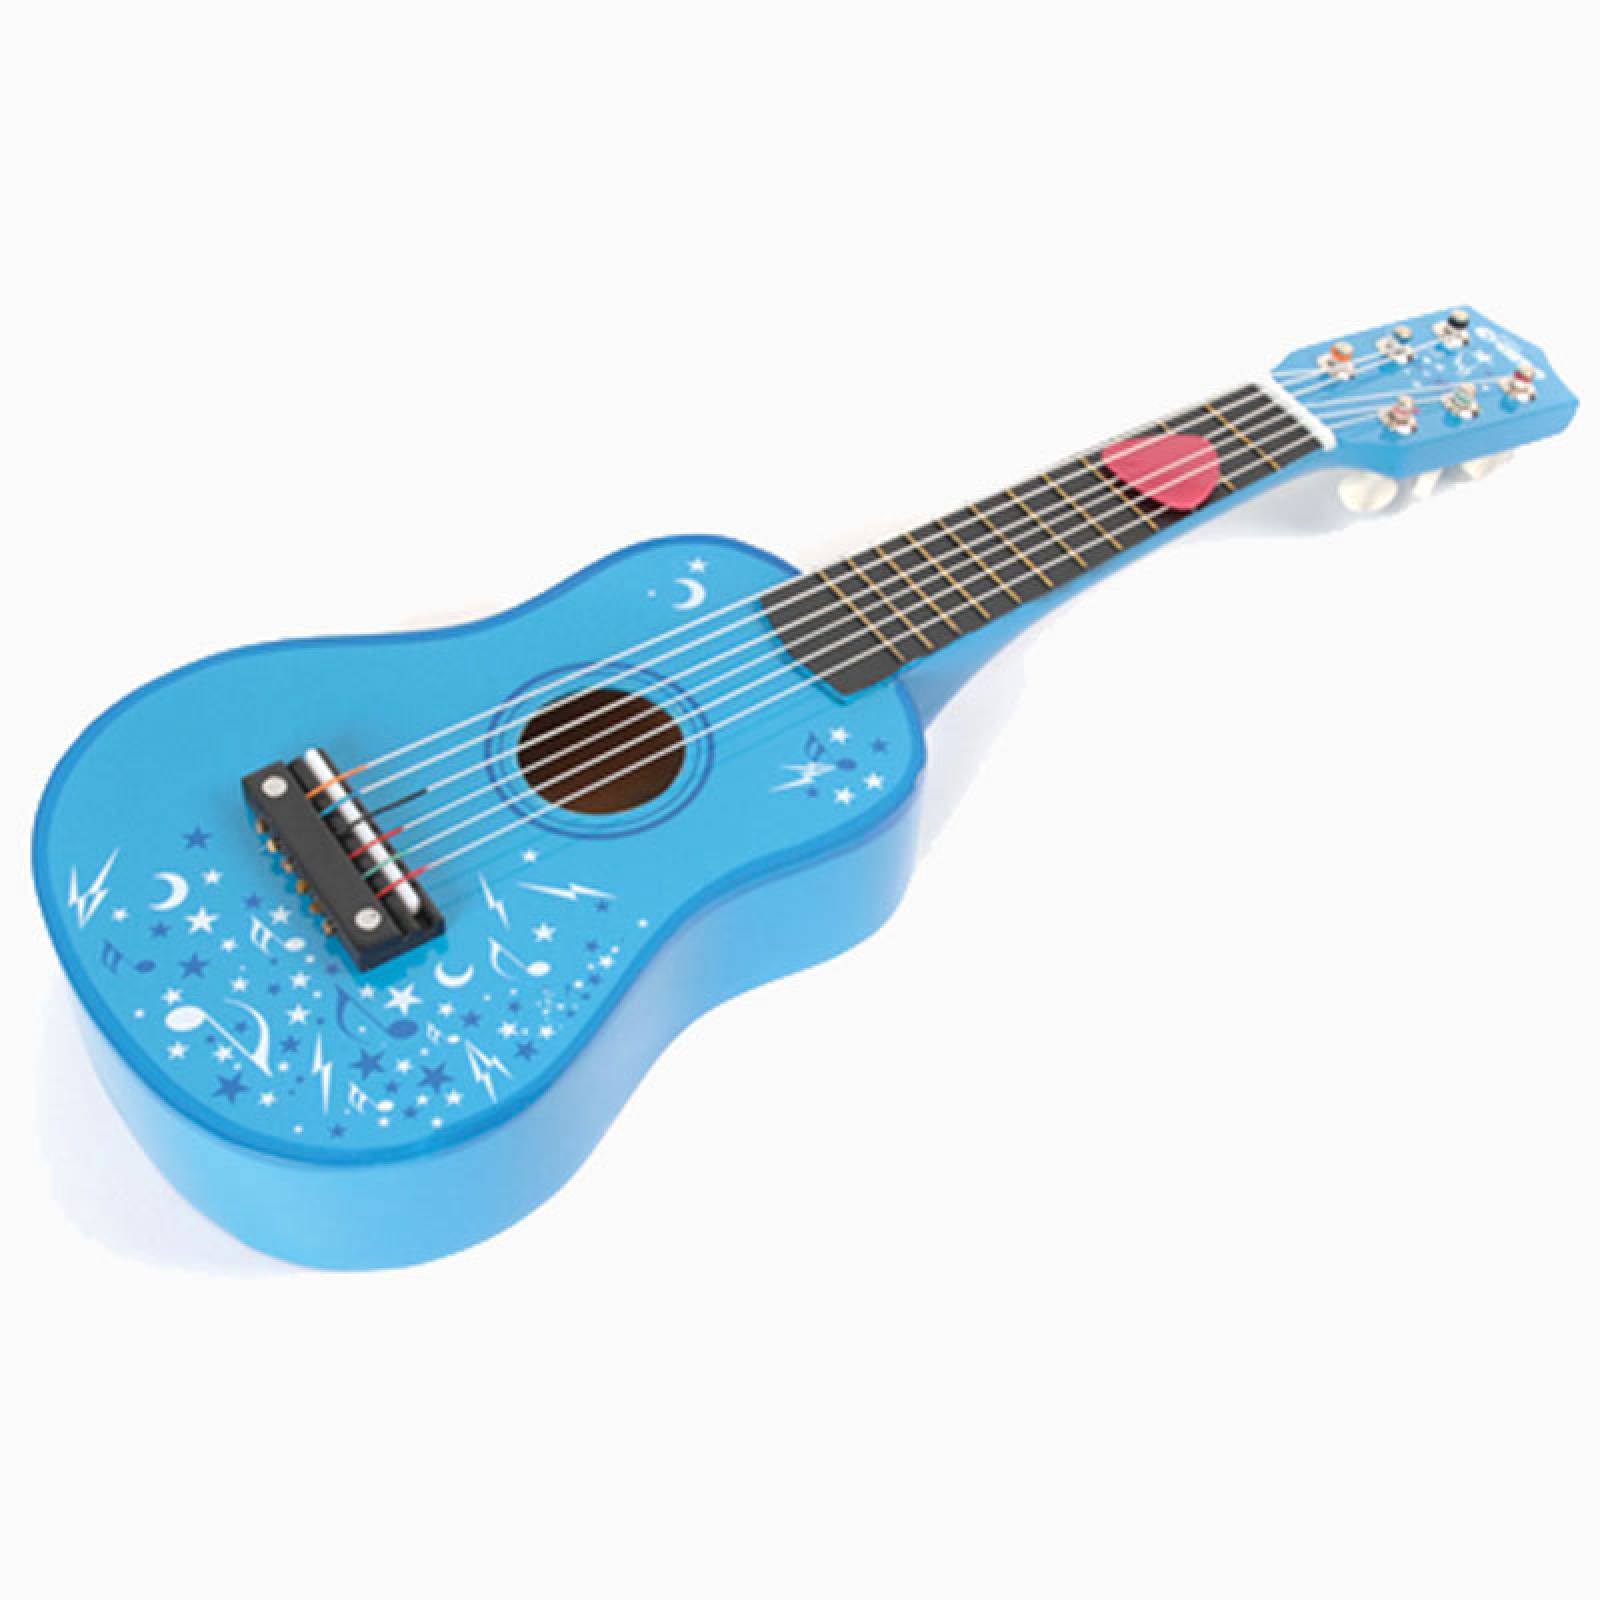 Children's Wooden Guitar In Blue WIth Stars 3+